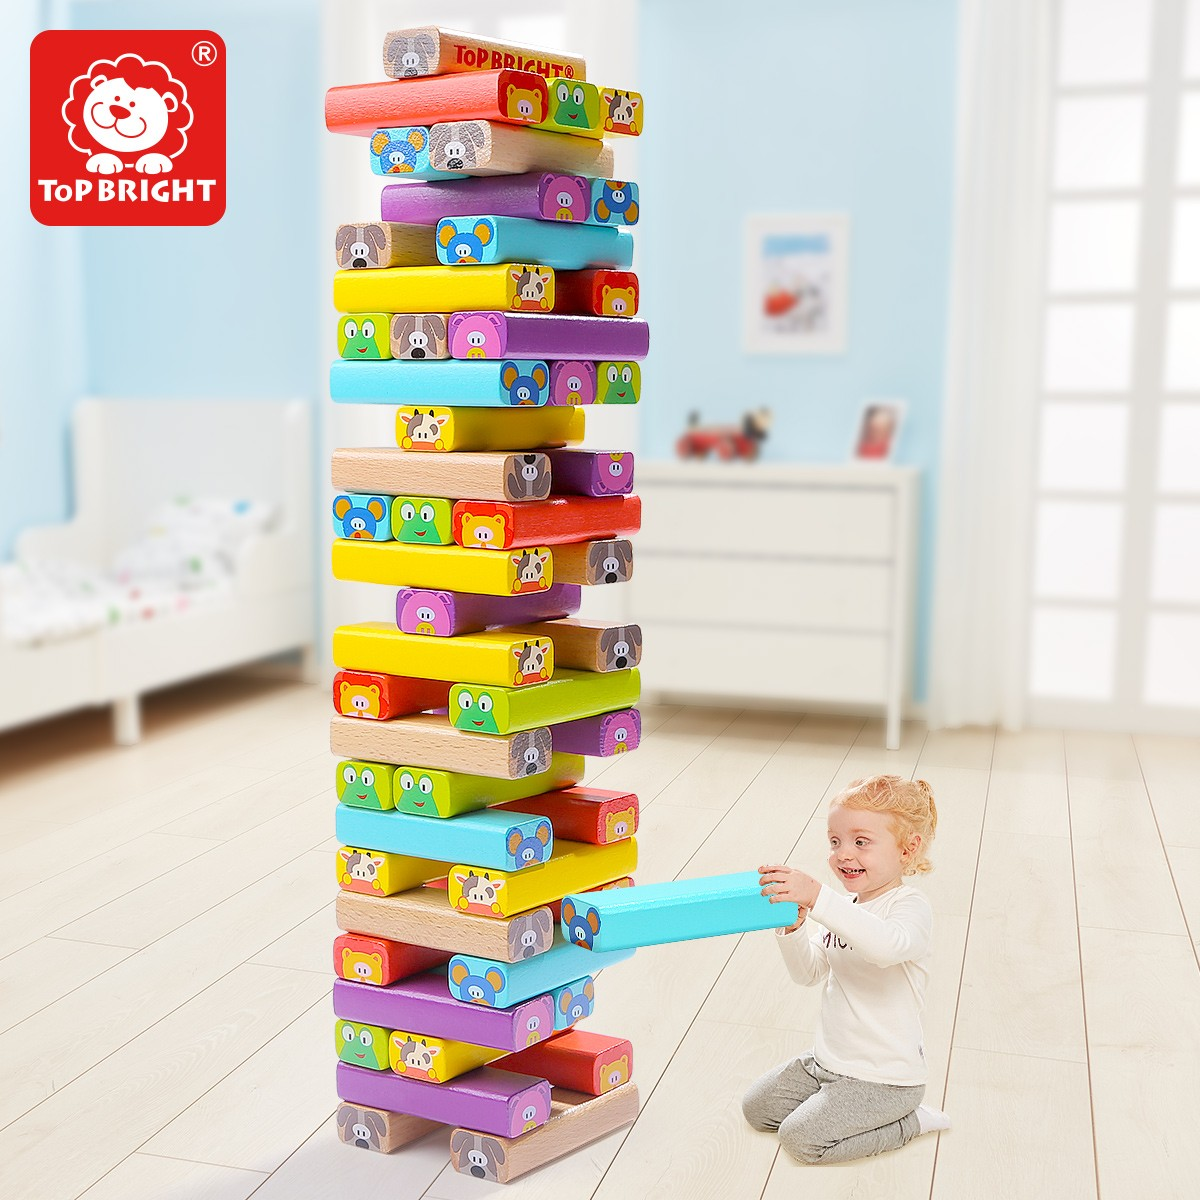 Topbright Animal Stacking Toys Manufacturers, Topbright Animal Stacking Toys Factory, Topbright Animal Stacking Toys